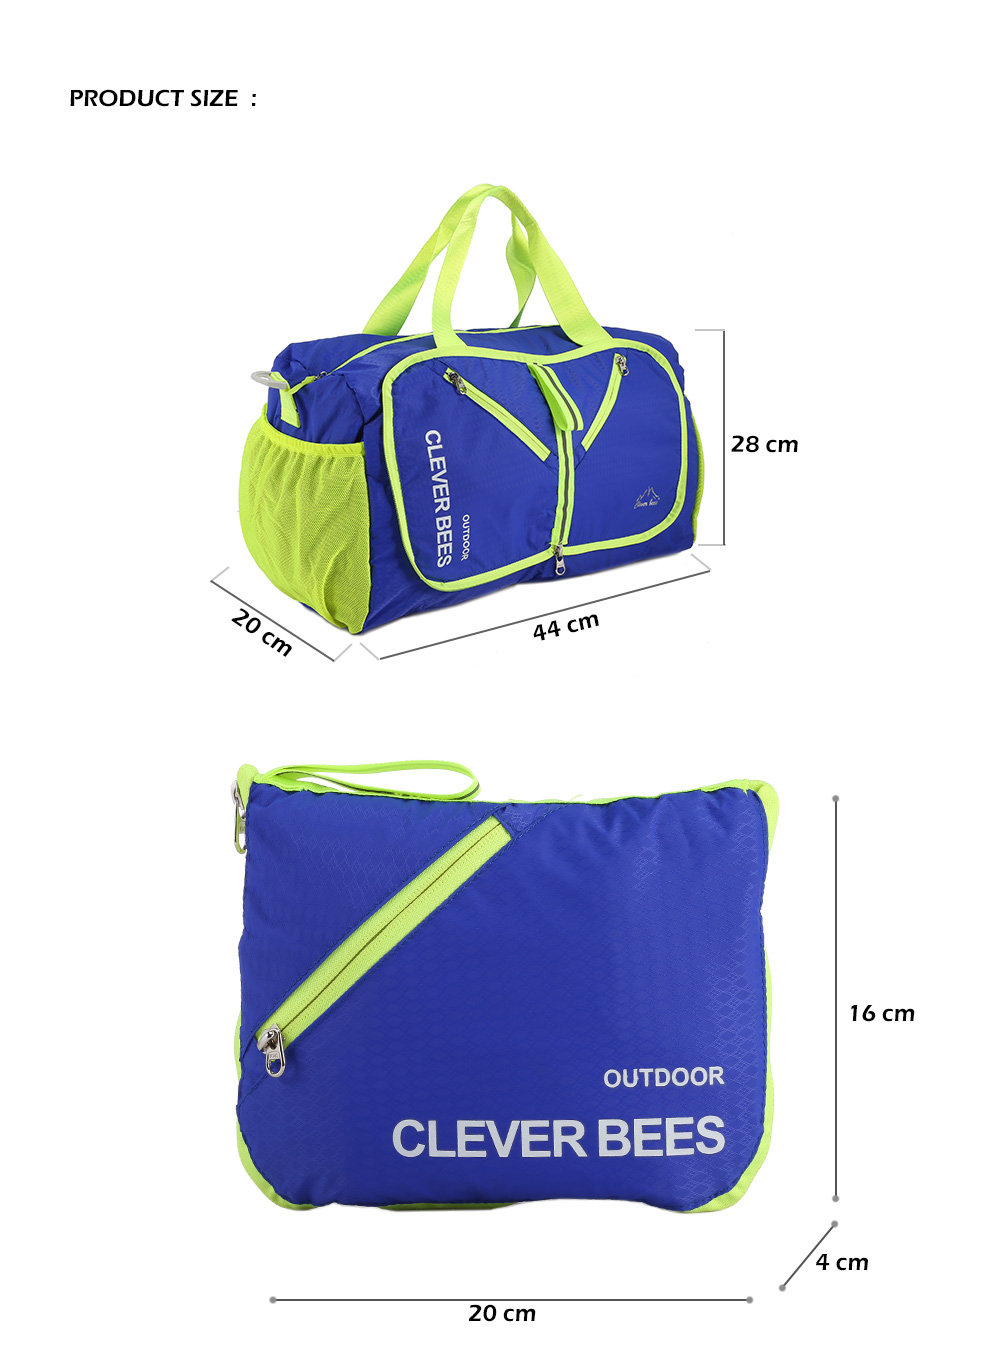 Ingenious Outdoor Sport Hiking Fitness Swimming Bags Men And Women Waterproof Travel Shoes Storage Bag Female Storage Bag Oxford Cloth Available In Various Designs And Specifications For Your Selection Kitchen Storage & Organization